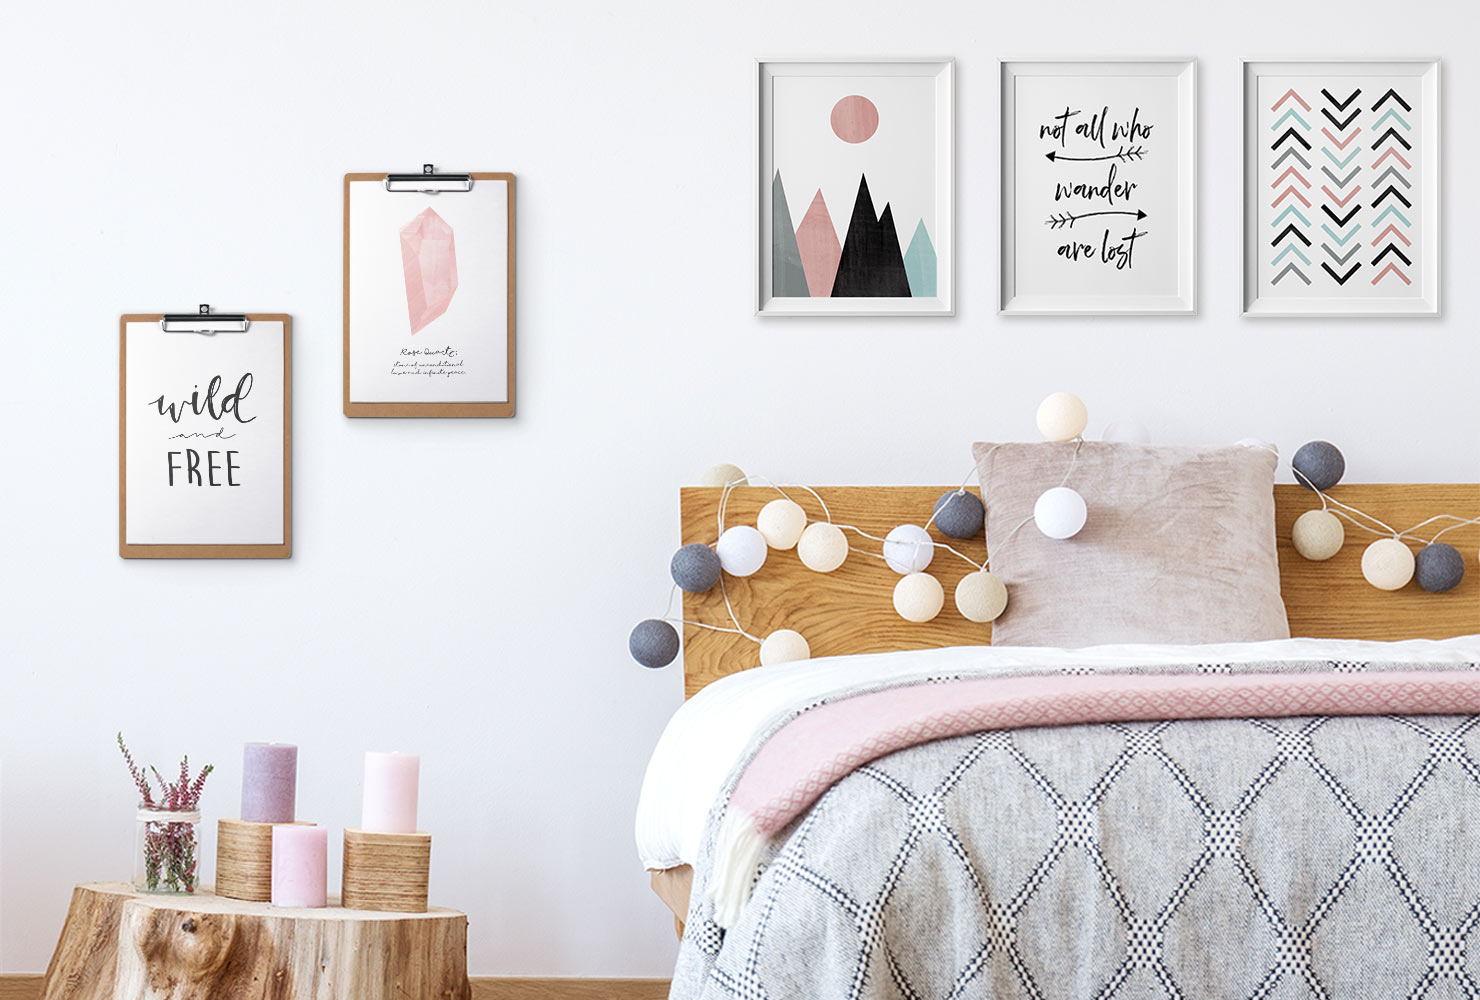 7 Of The Best Bedroom DIY Ideas and Projects